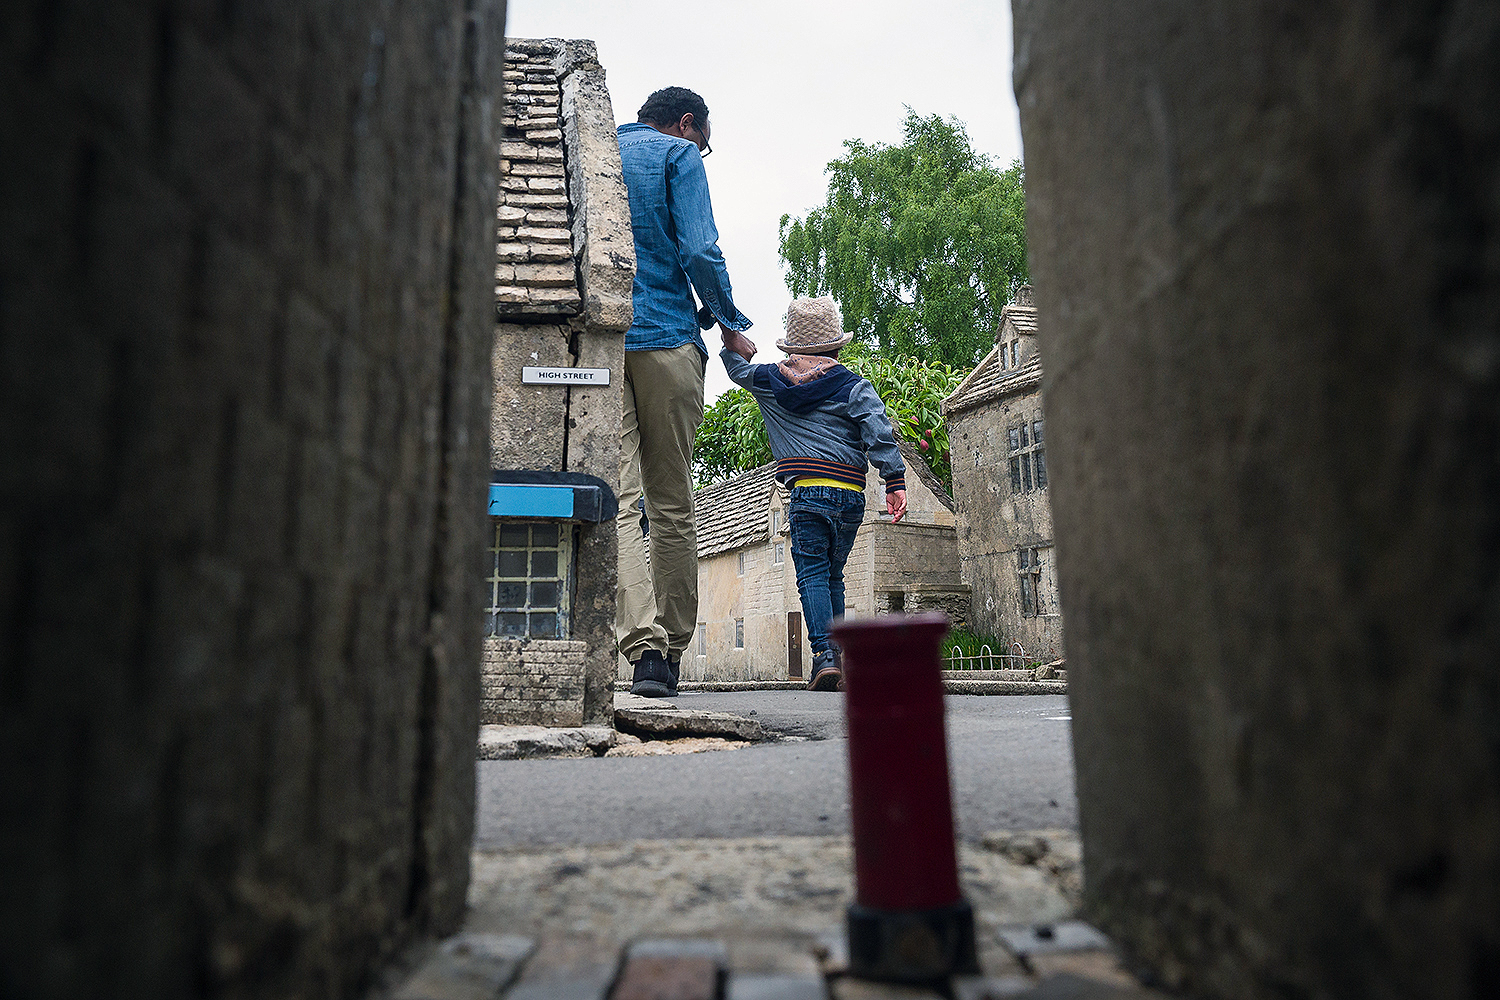 A father and son walk along one of the miniature streets of the model village in Bourton-on-the-Water, England, on July 4. Leon Neal/Getty Images